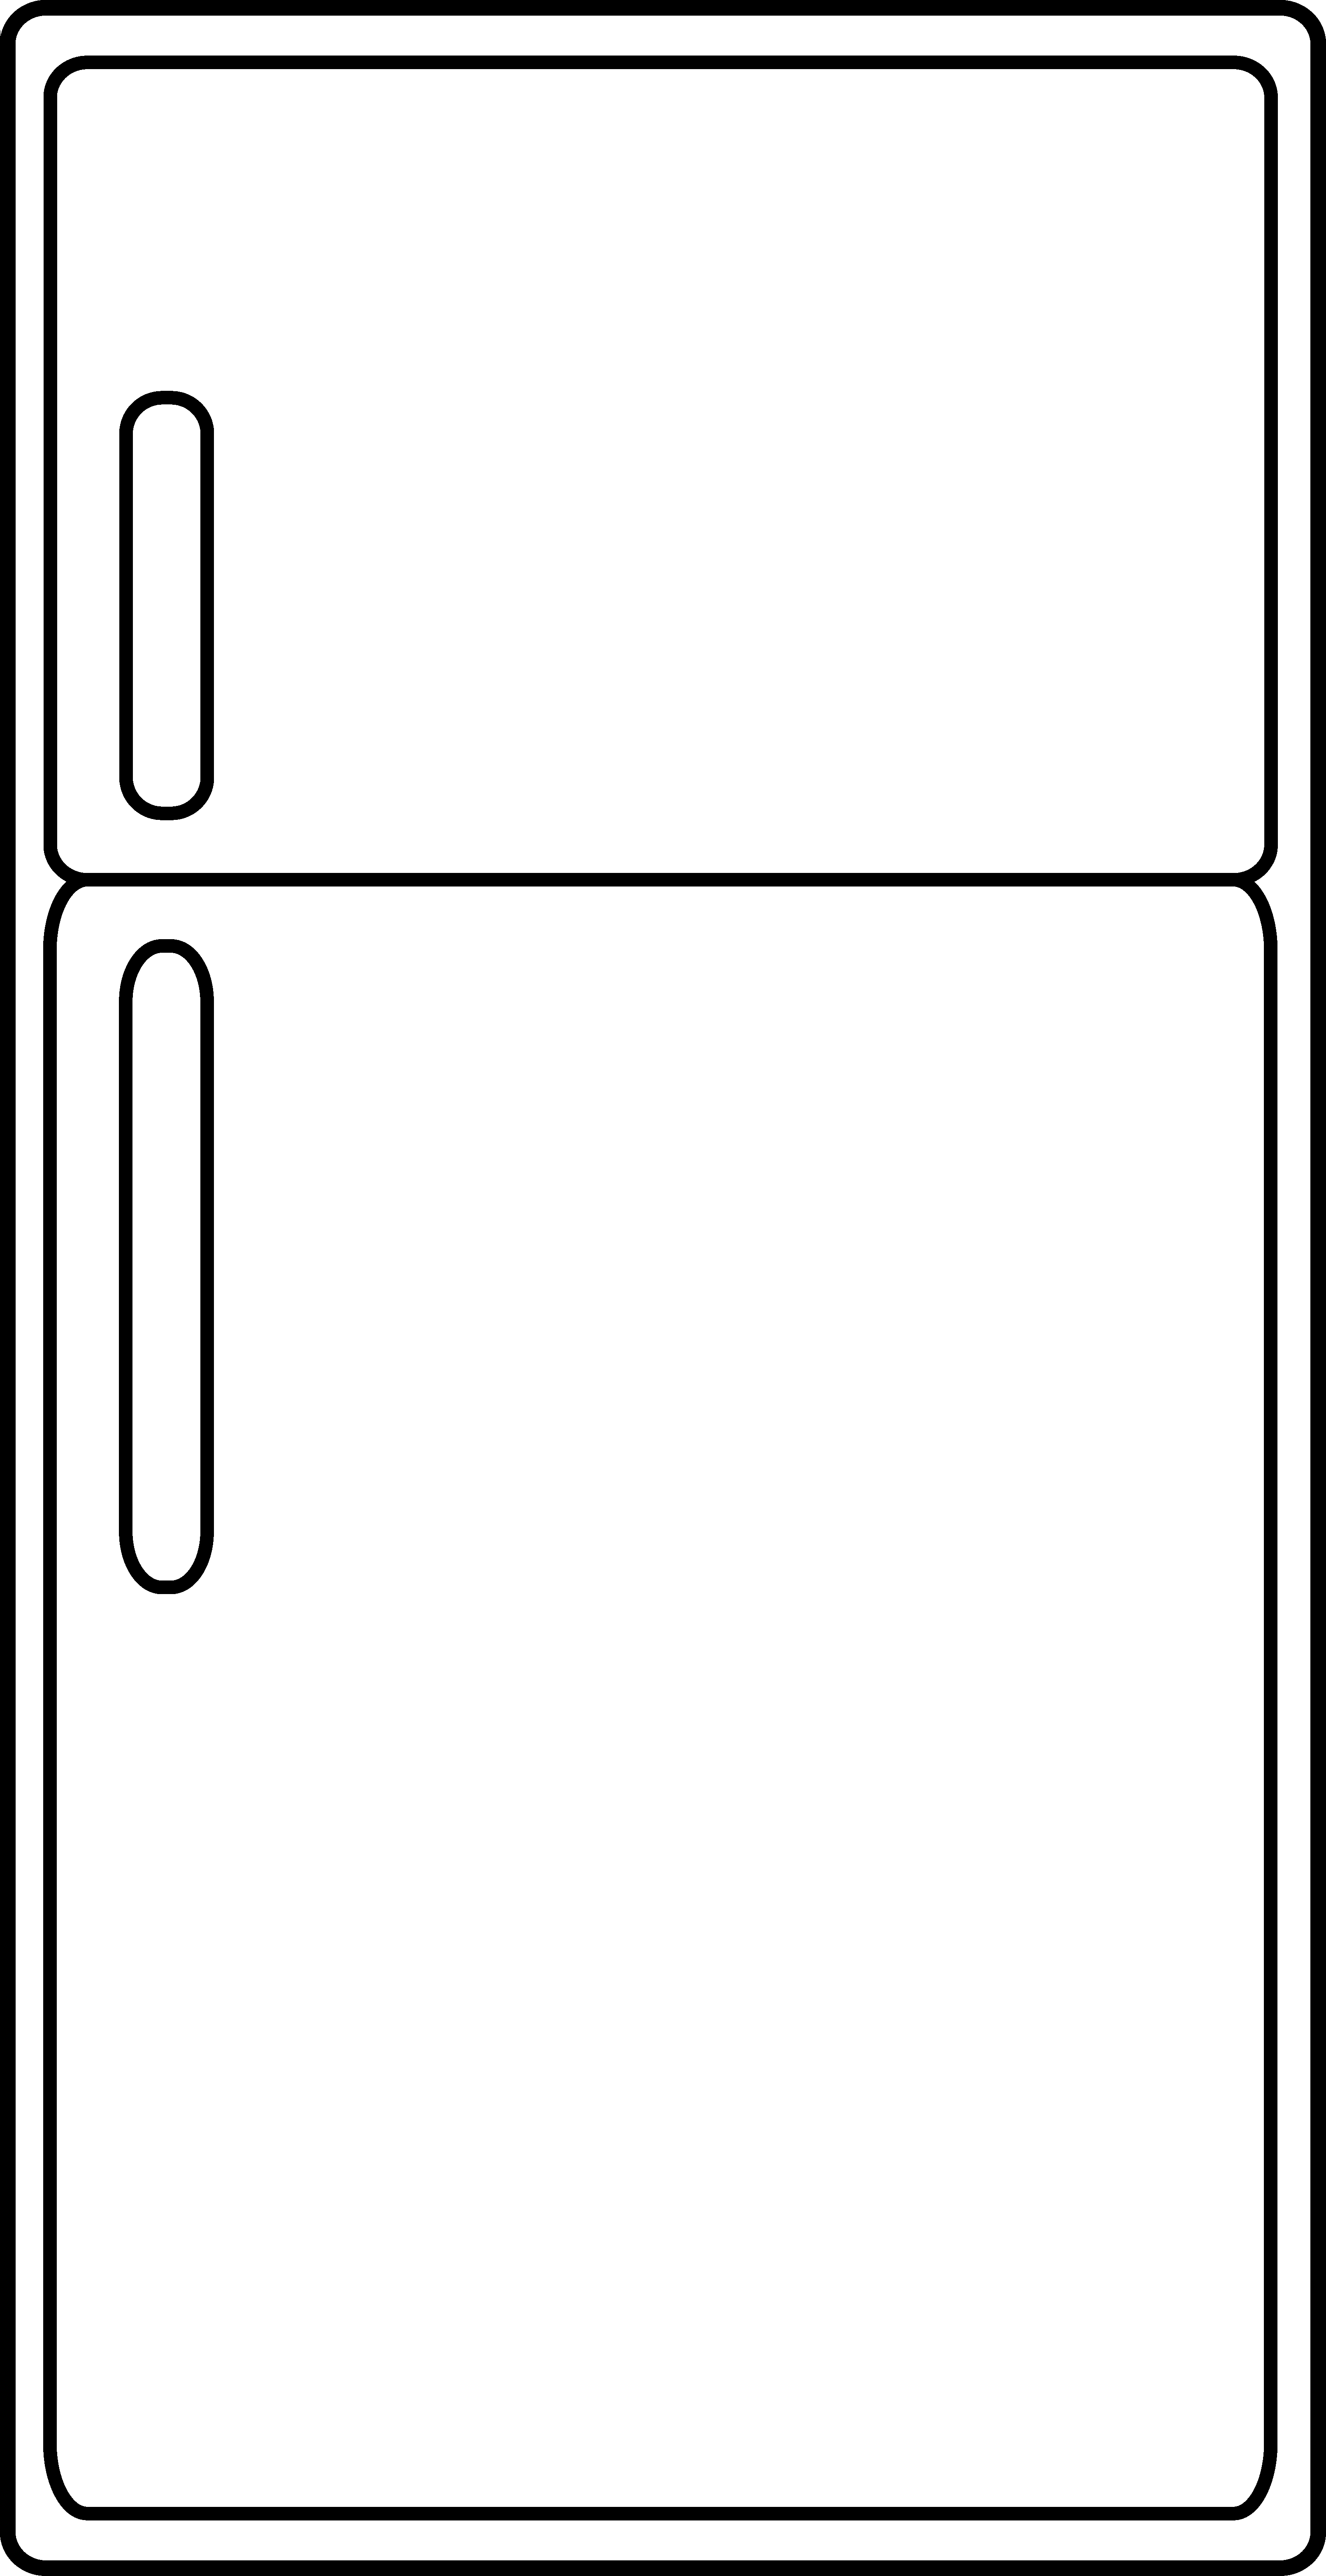 colouring picture of refrigerator